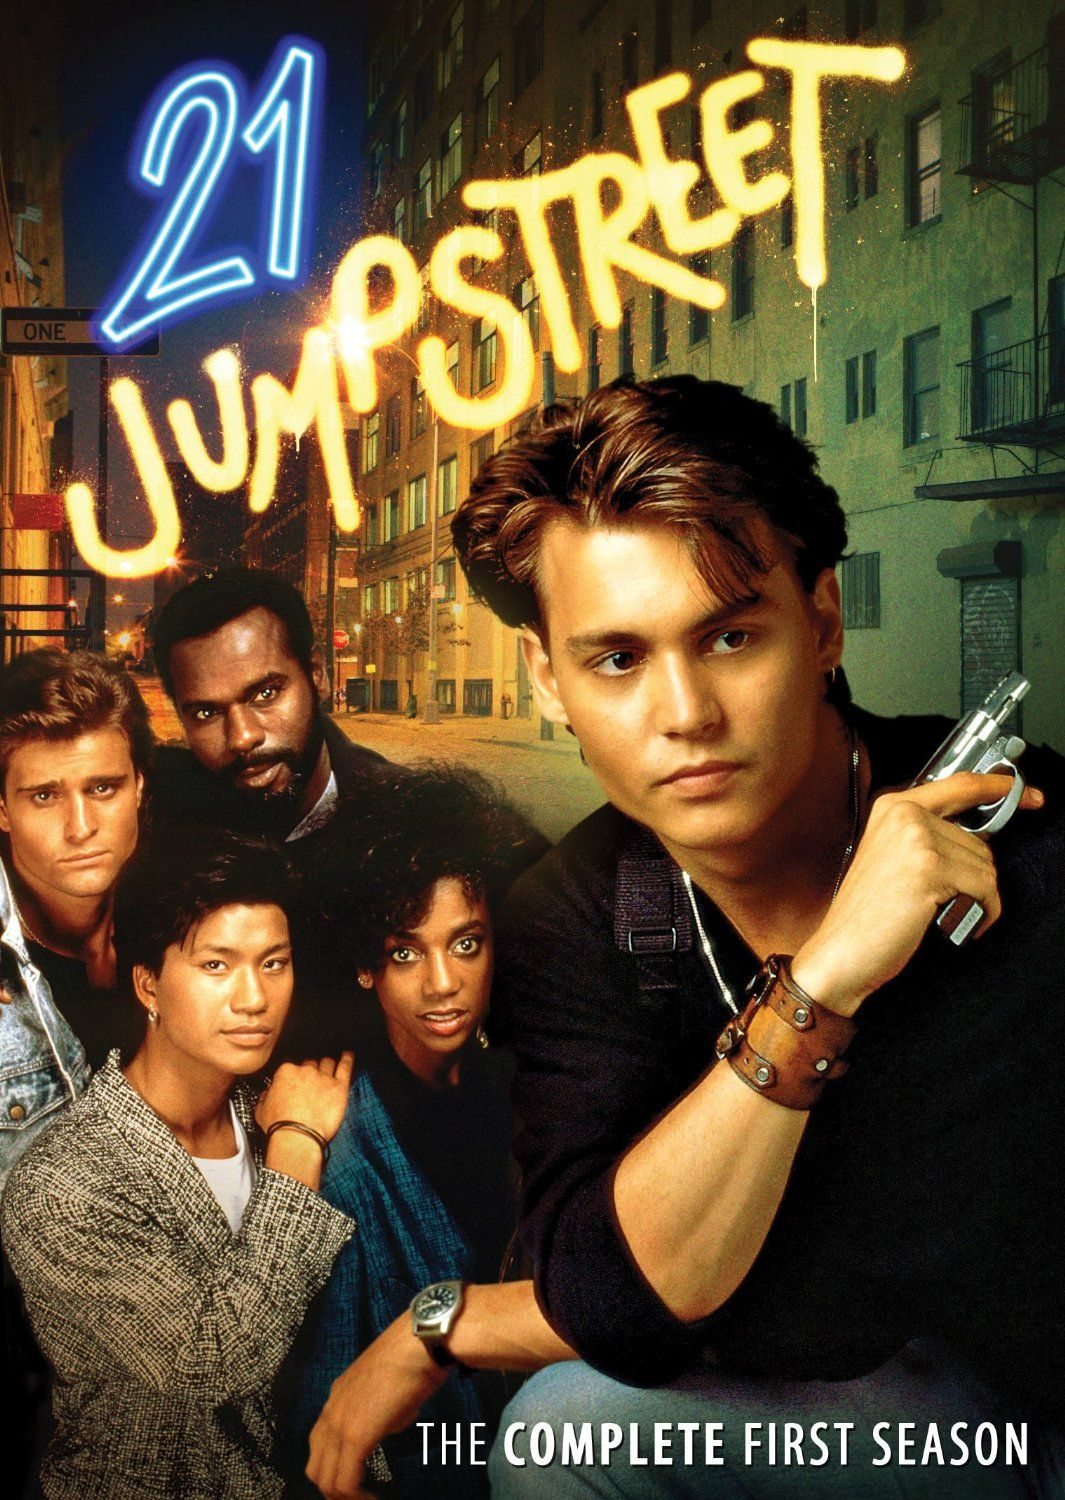 21 Jump Street (TV Series)(1987) Country: United States | Screen ...